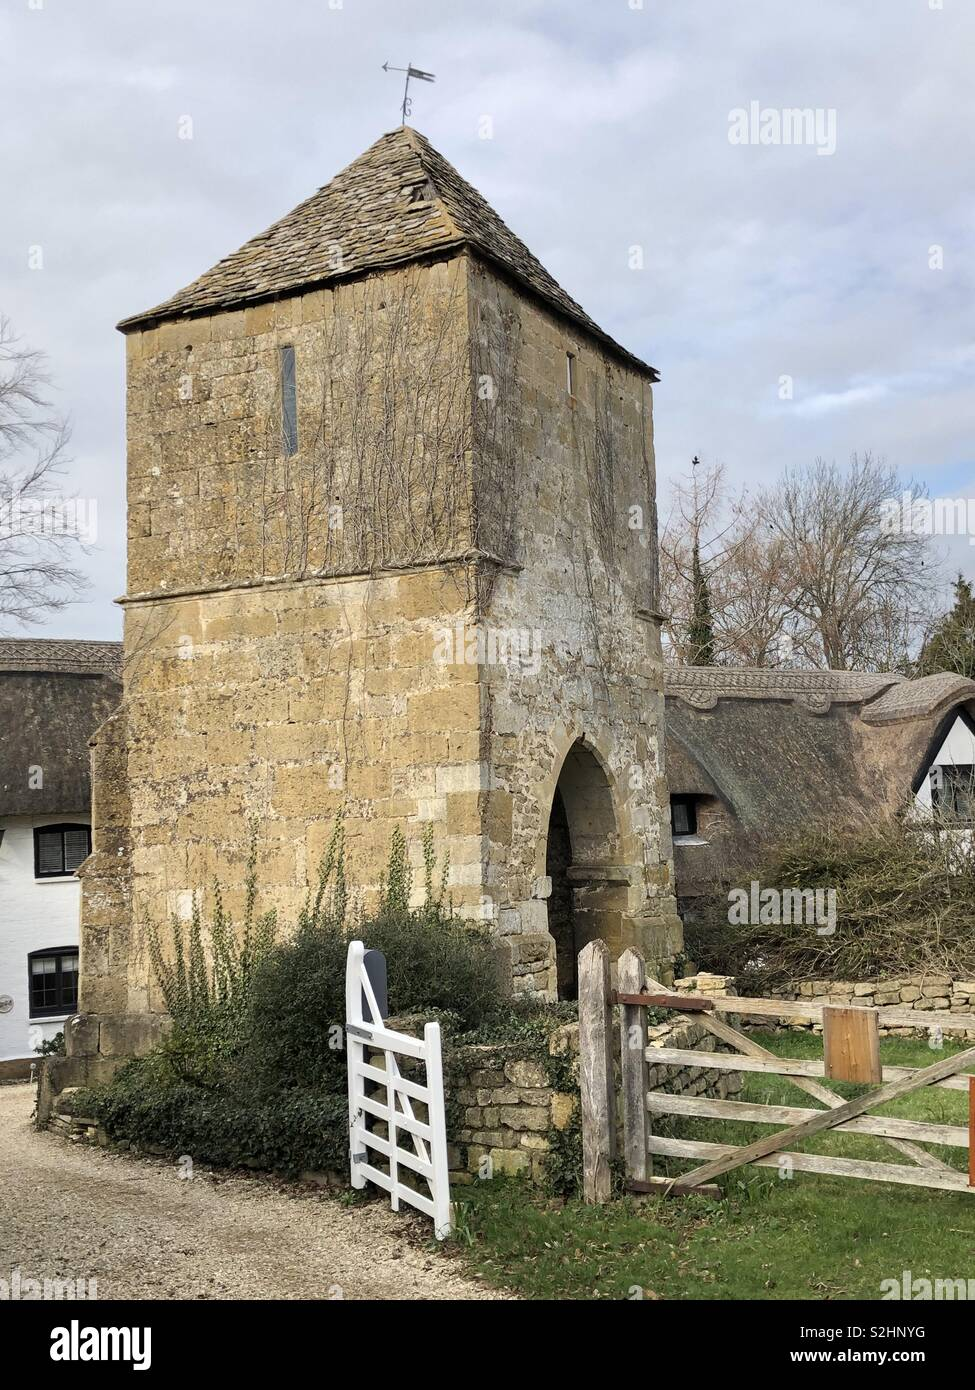 Picturesque ruin and tower all that is left of the medieval church at Gretton, near Cheltenham in the Vale of Evesham flanked by beautiful period thatched cottages. - Stock Image